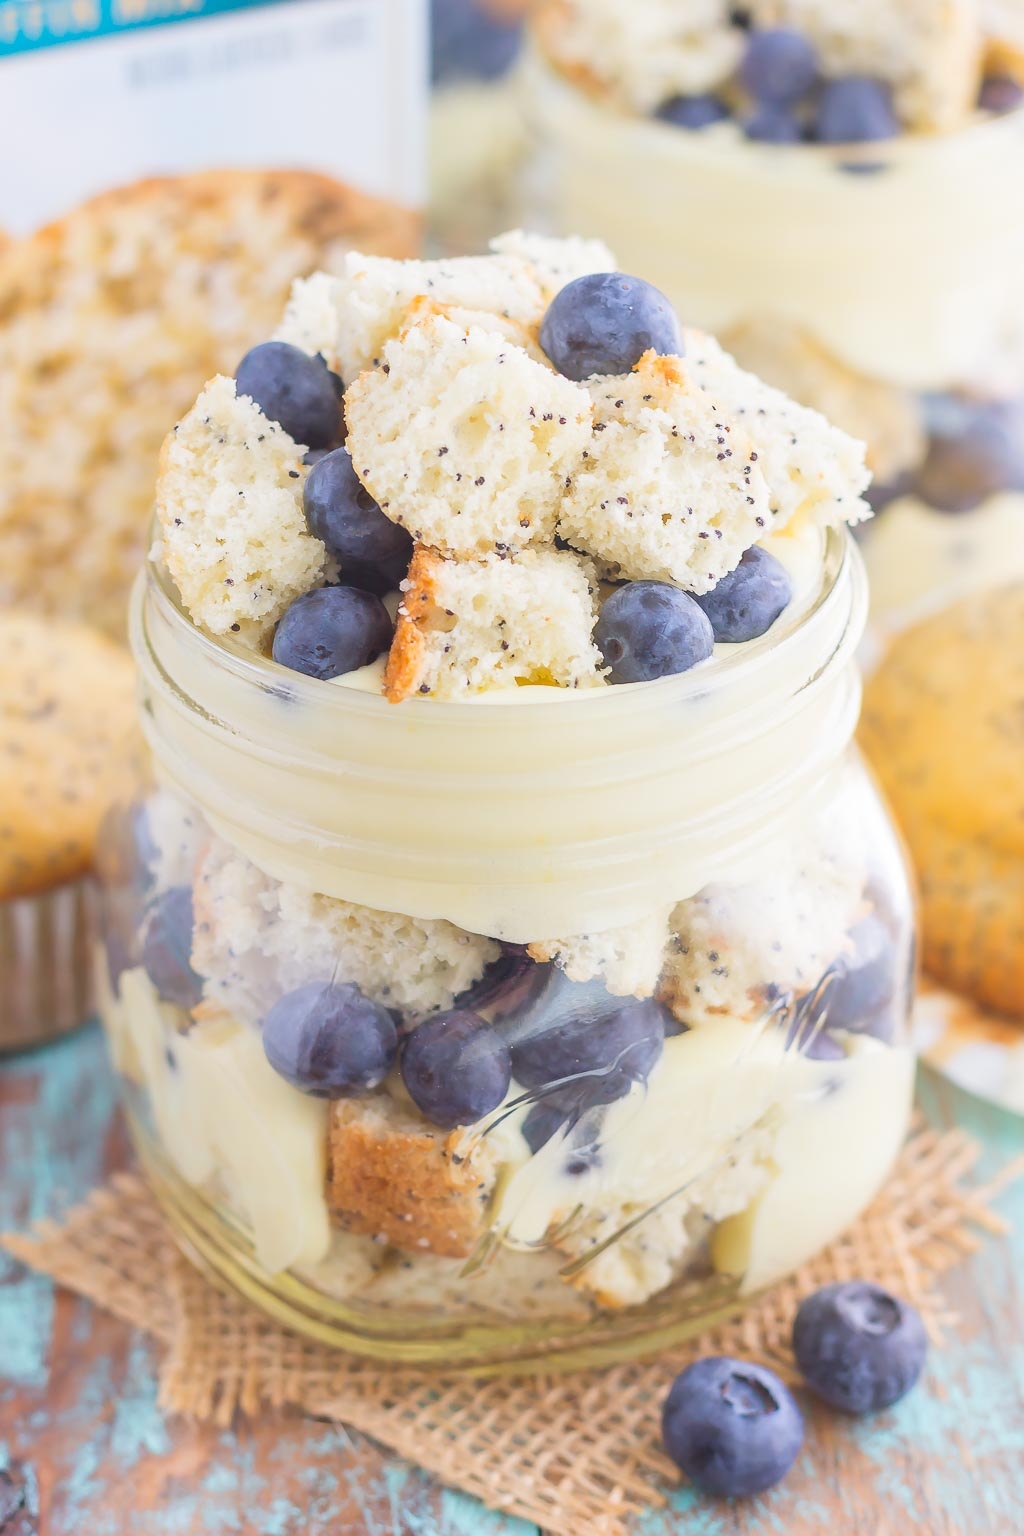 Blueberry Almond Poppy Seed Muffin Trifles are filled with creamy, whipped vanilla pudding, almond poppy seed muffin chunks, and fresh blueberries. It's layered together to create a simple dessert that's ready in no time!